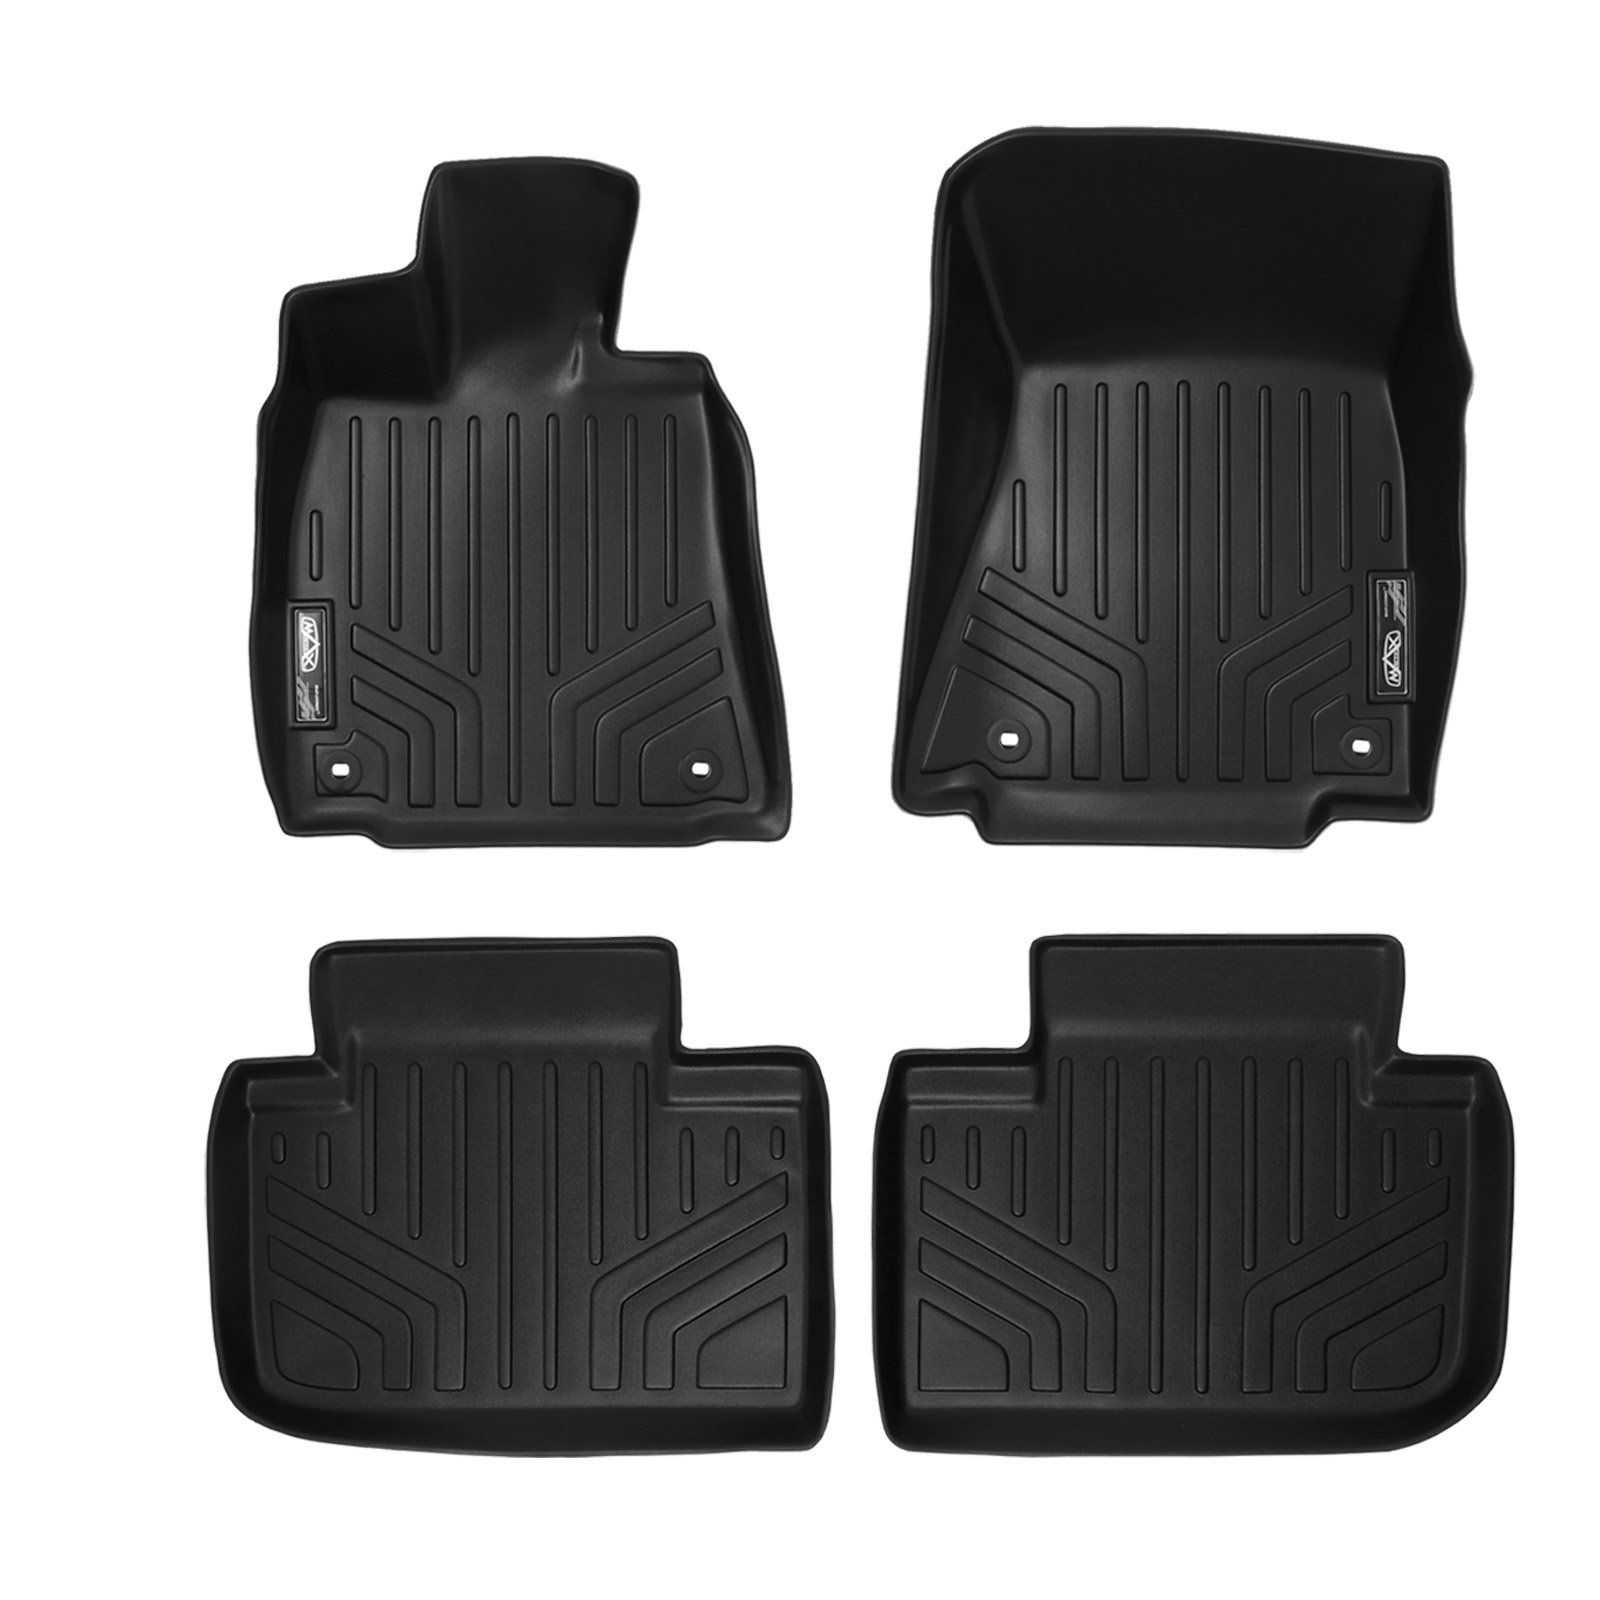 Smartliner Floor Mats 2 Row Liner Set Black For 2014 2018 Lexus Is Sedan Rear Wheel Drive Only Check Out The Image B In 2020 Camry 2015 Rear Wheel Drive Body Style